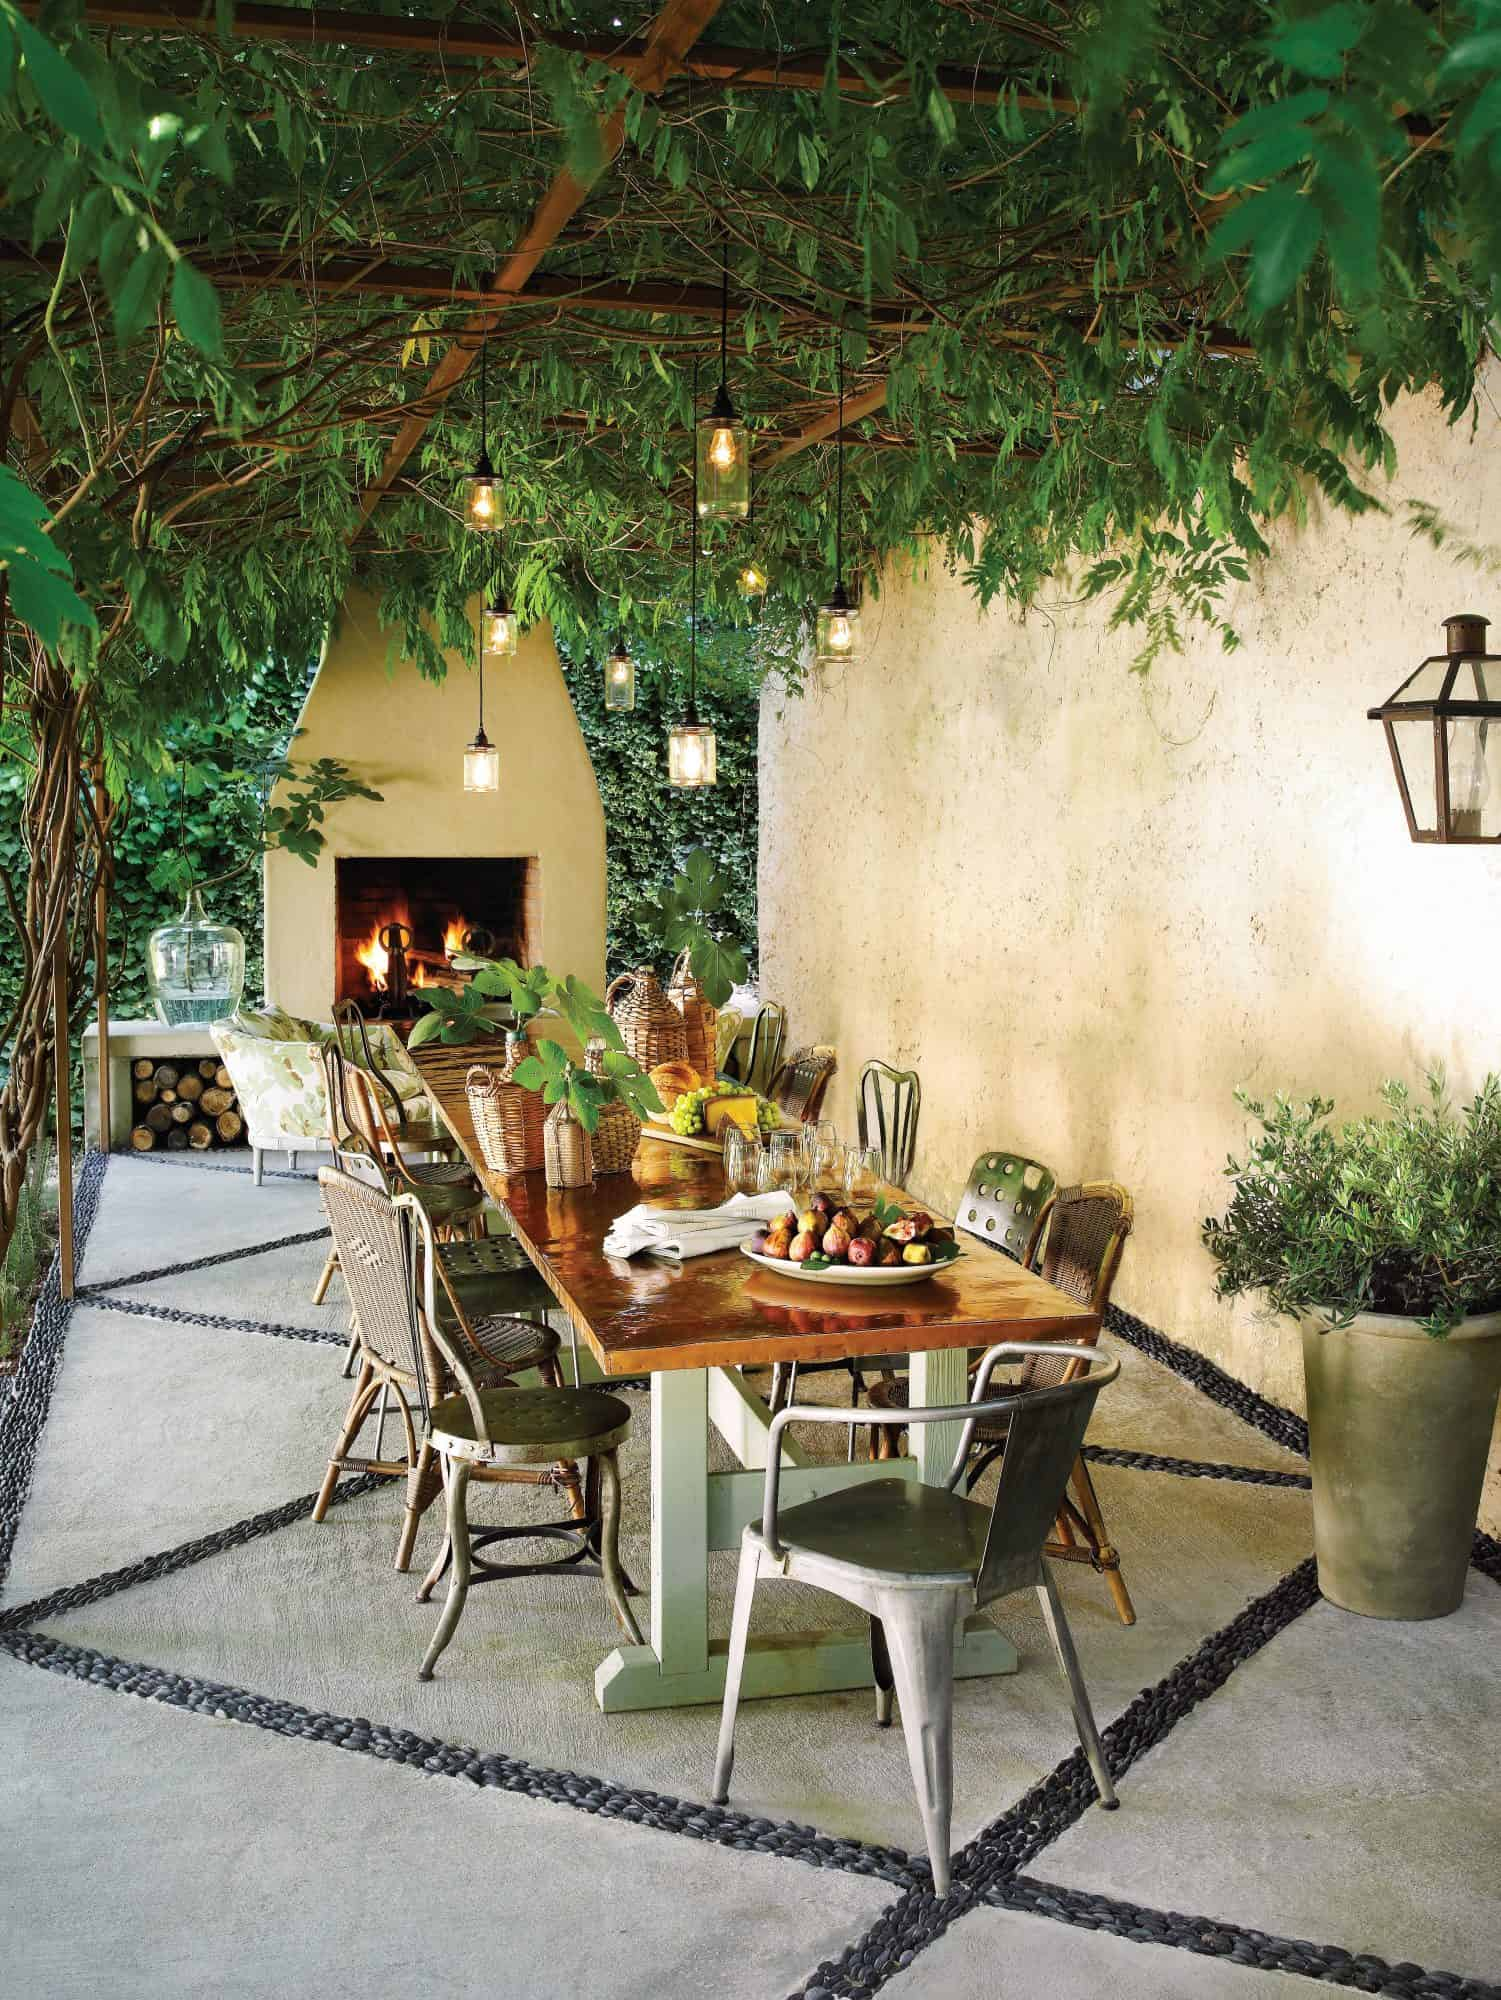 dining area in patio